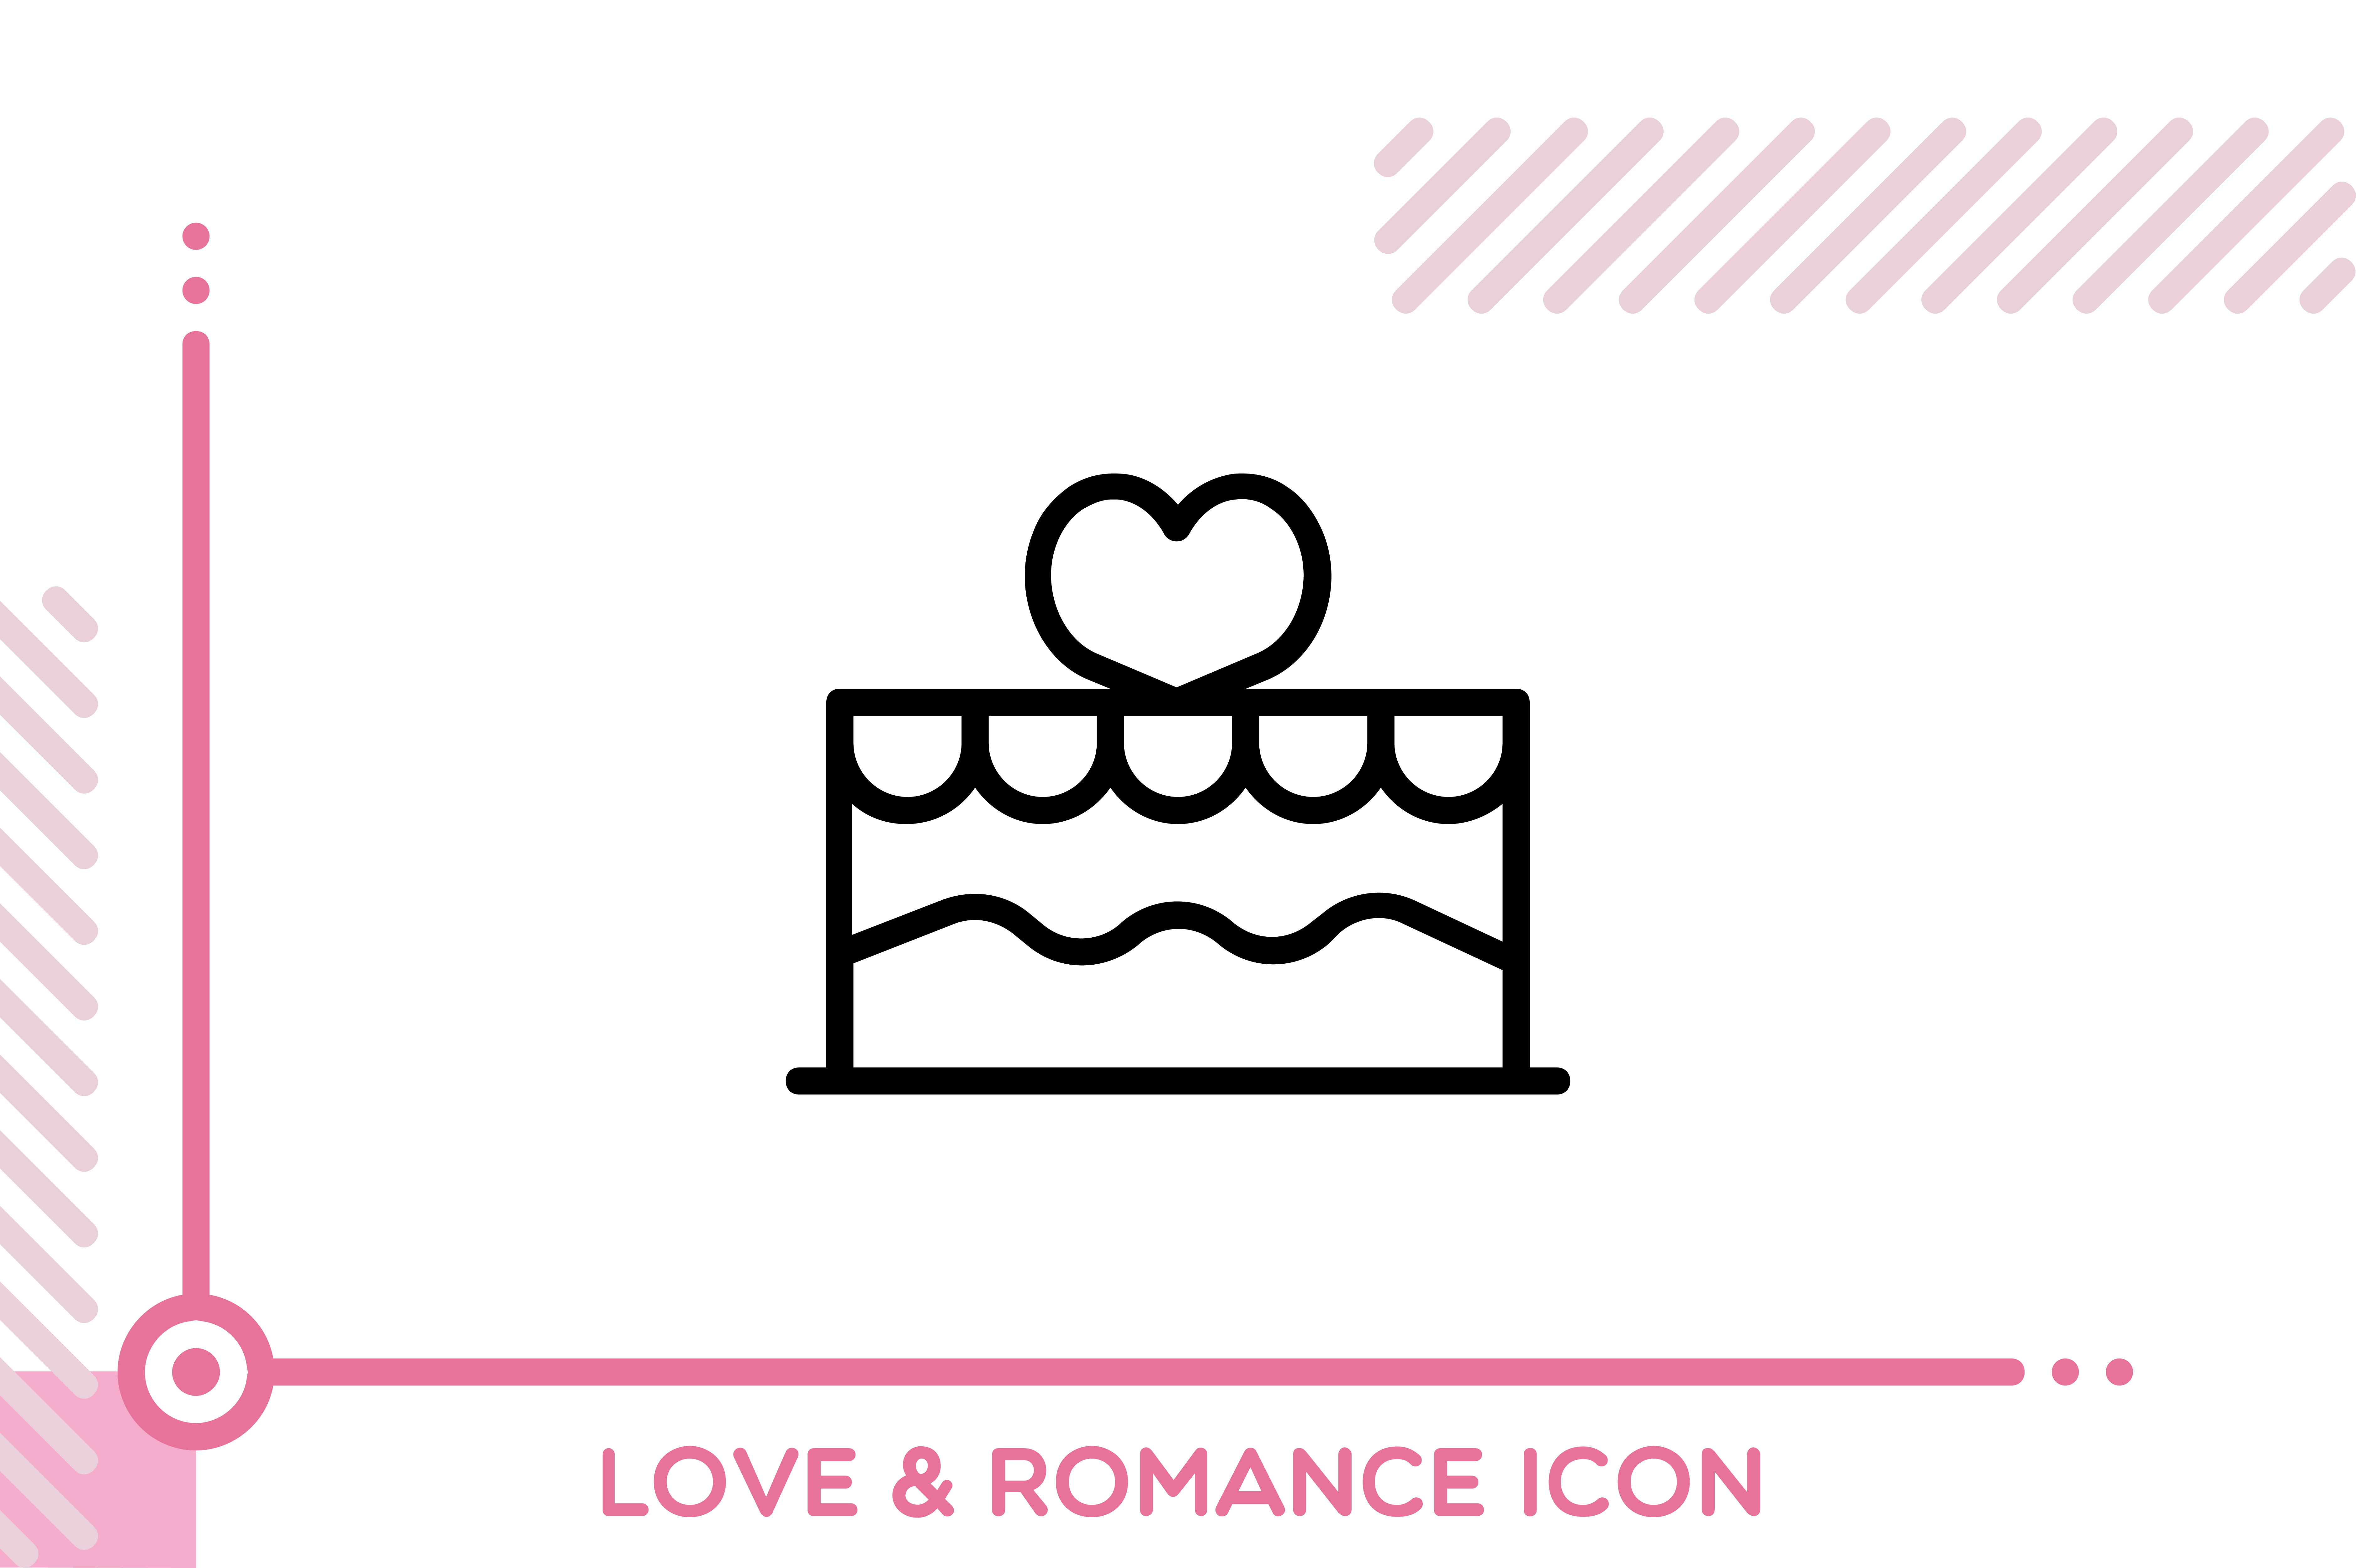 Download Free Love And Romance Cake Graphic By Freddyadho Creative Fabrica for Cricut Explore, Silhouette and other cutting machines.